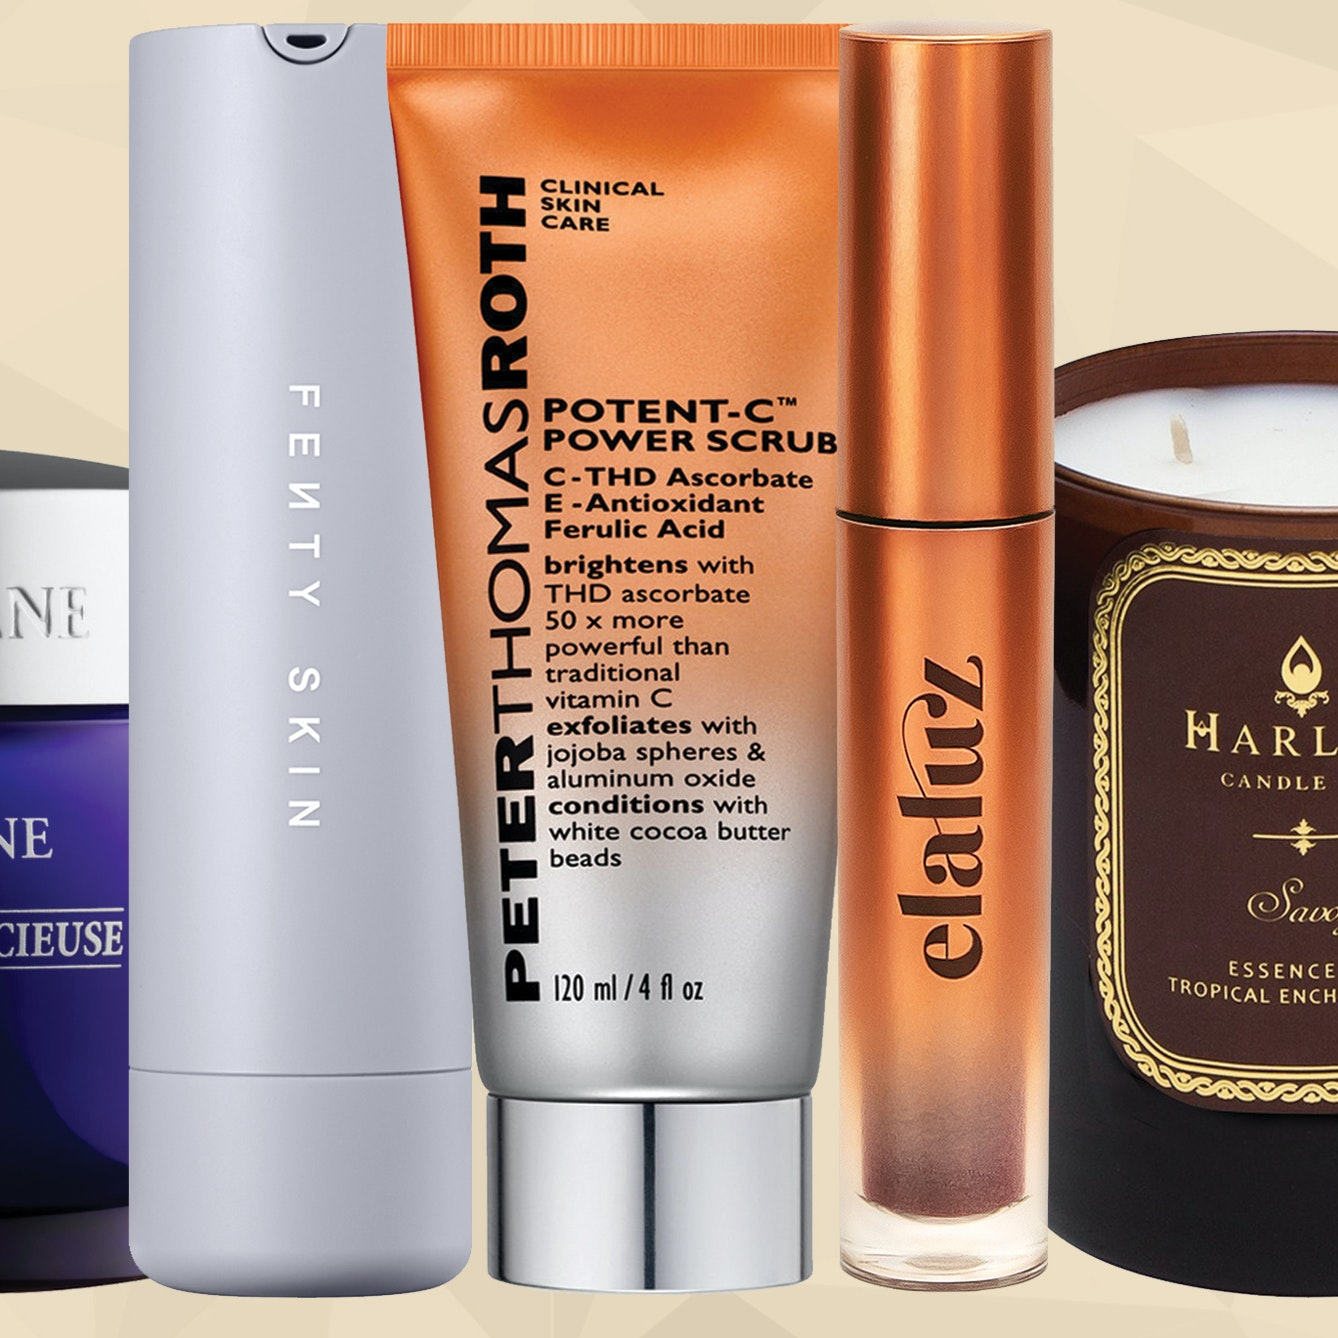 Start September In Style With Our Editors' New Favorite Beauty Launches